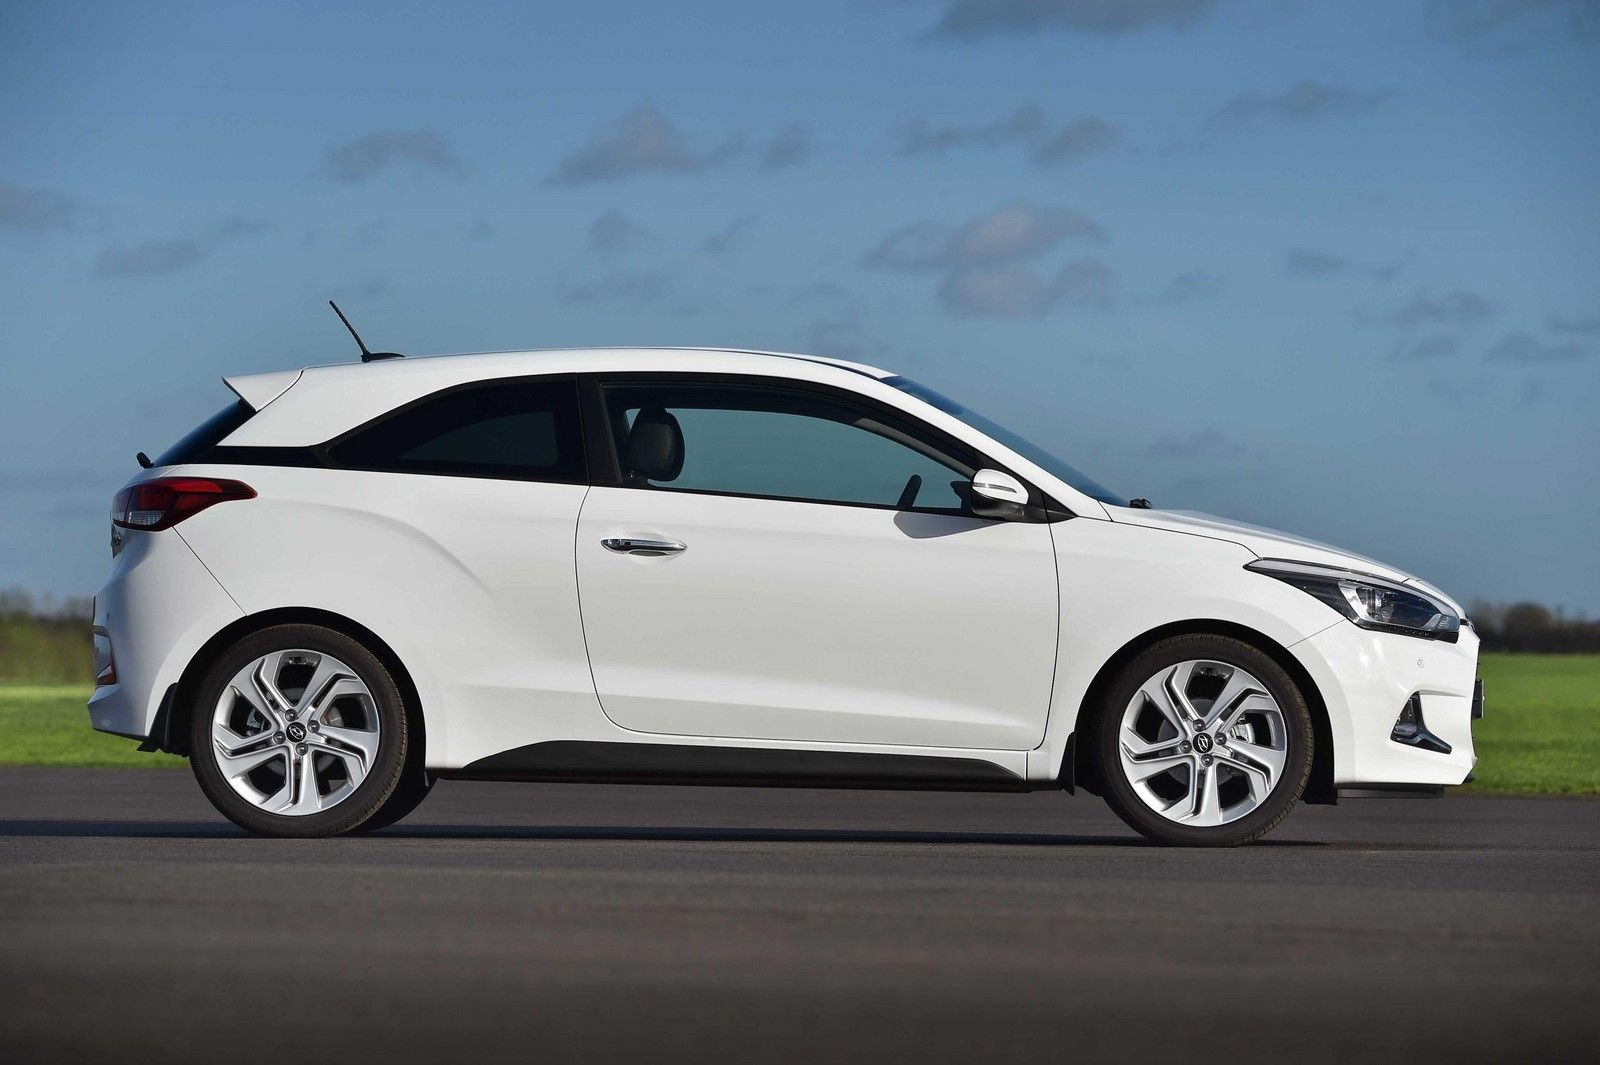 Hyundai I20 Top Model Car One Of The Best Interior Design Trendy